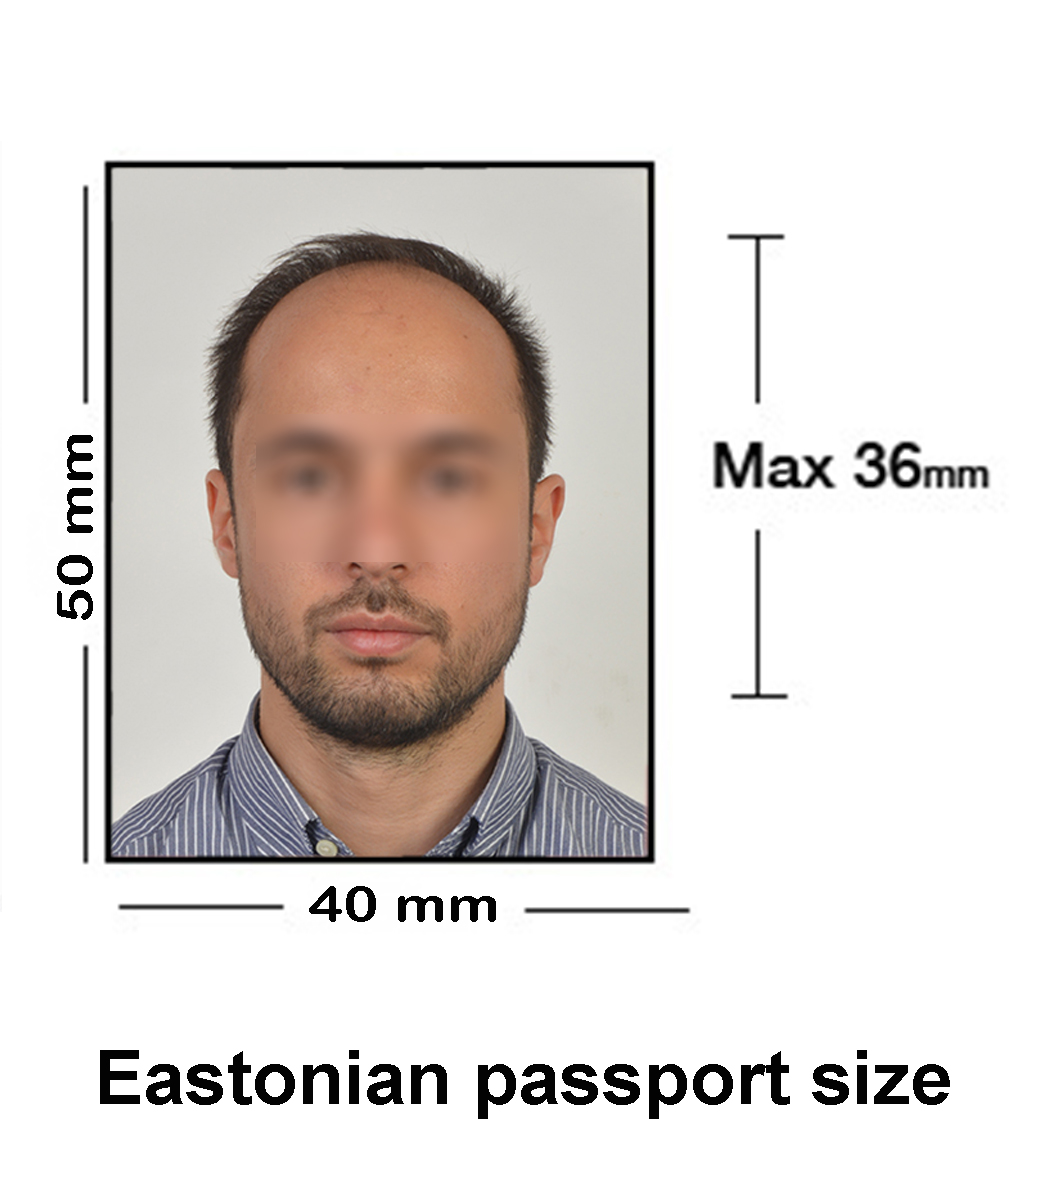 eastonian-passport-size-01